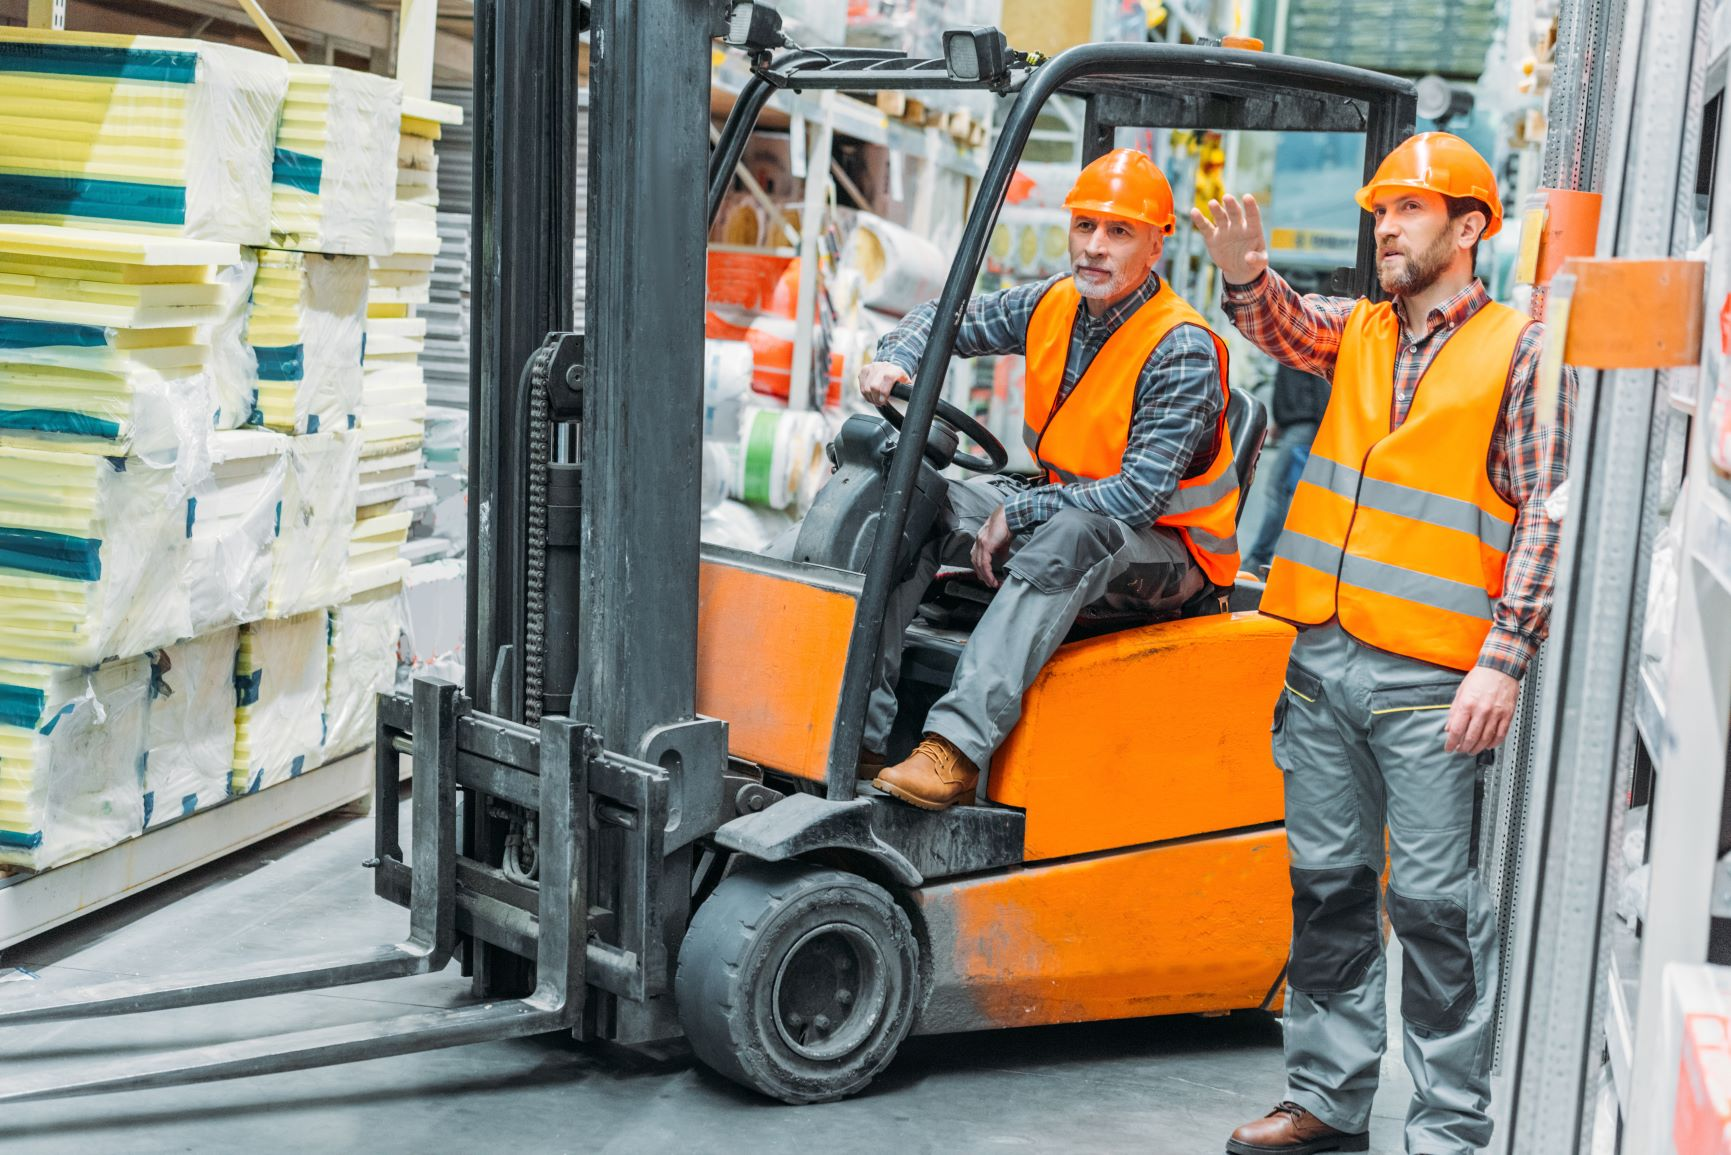 Forklift with driver